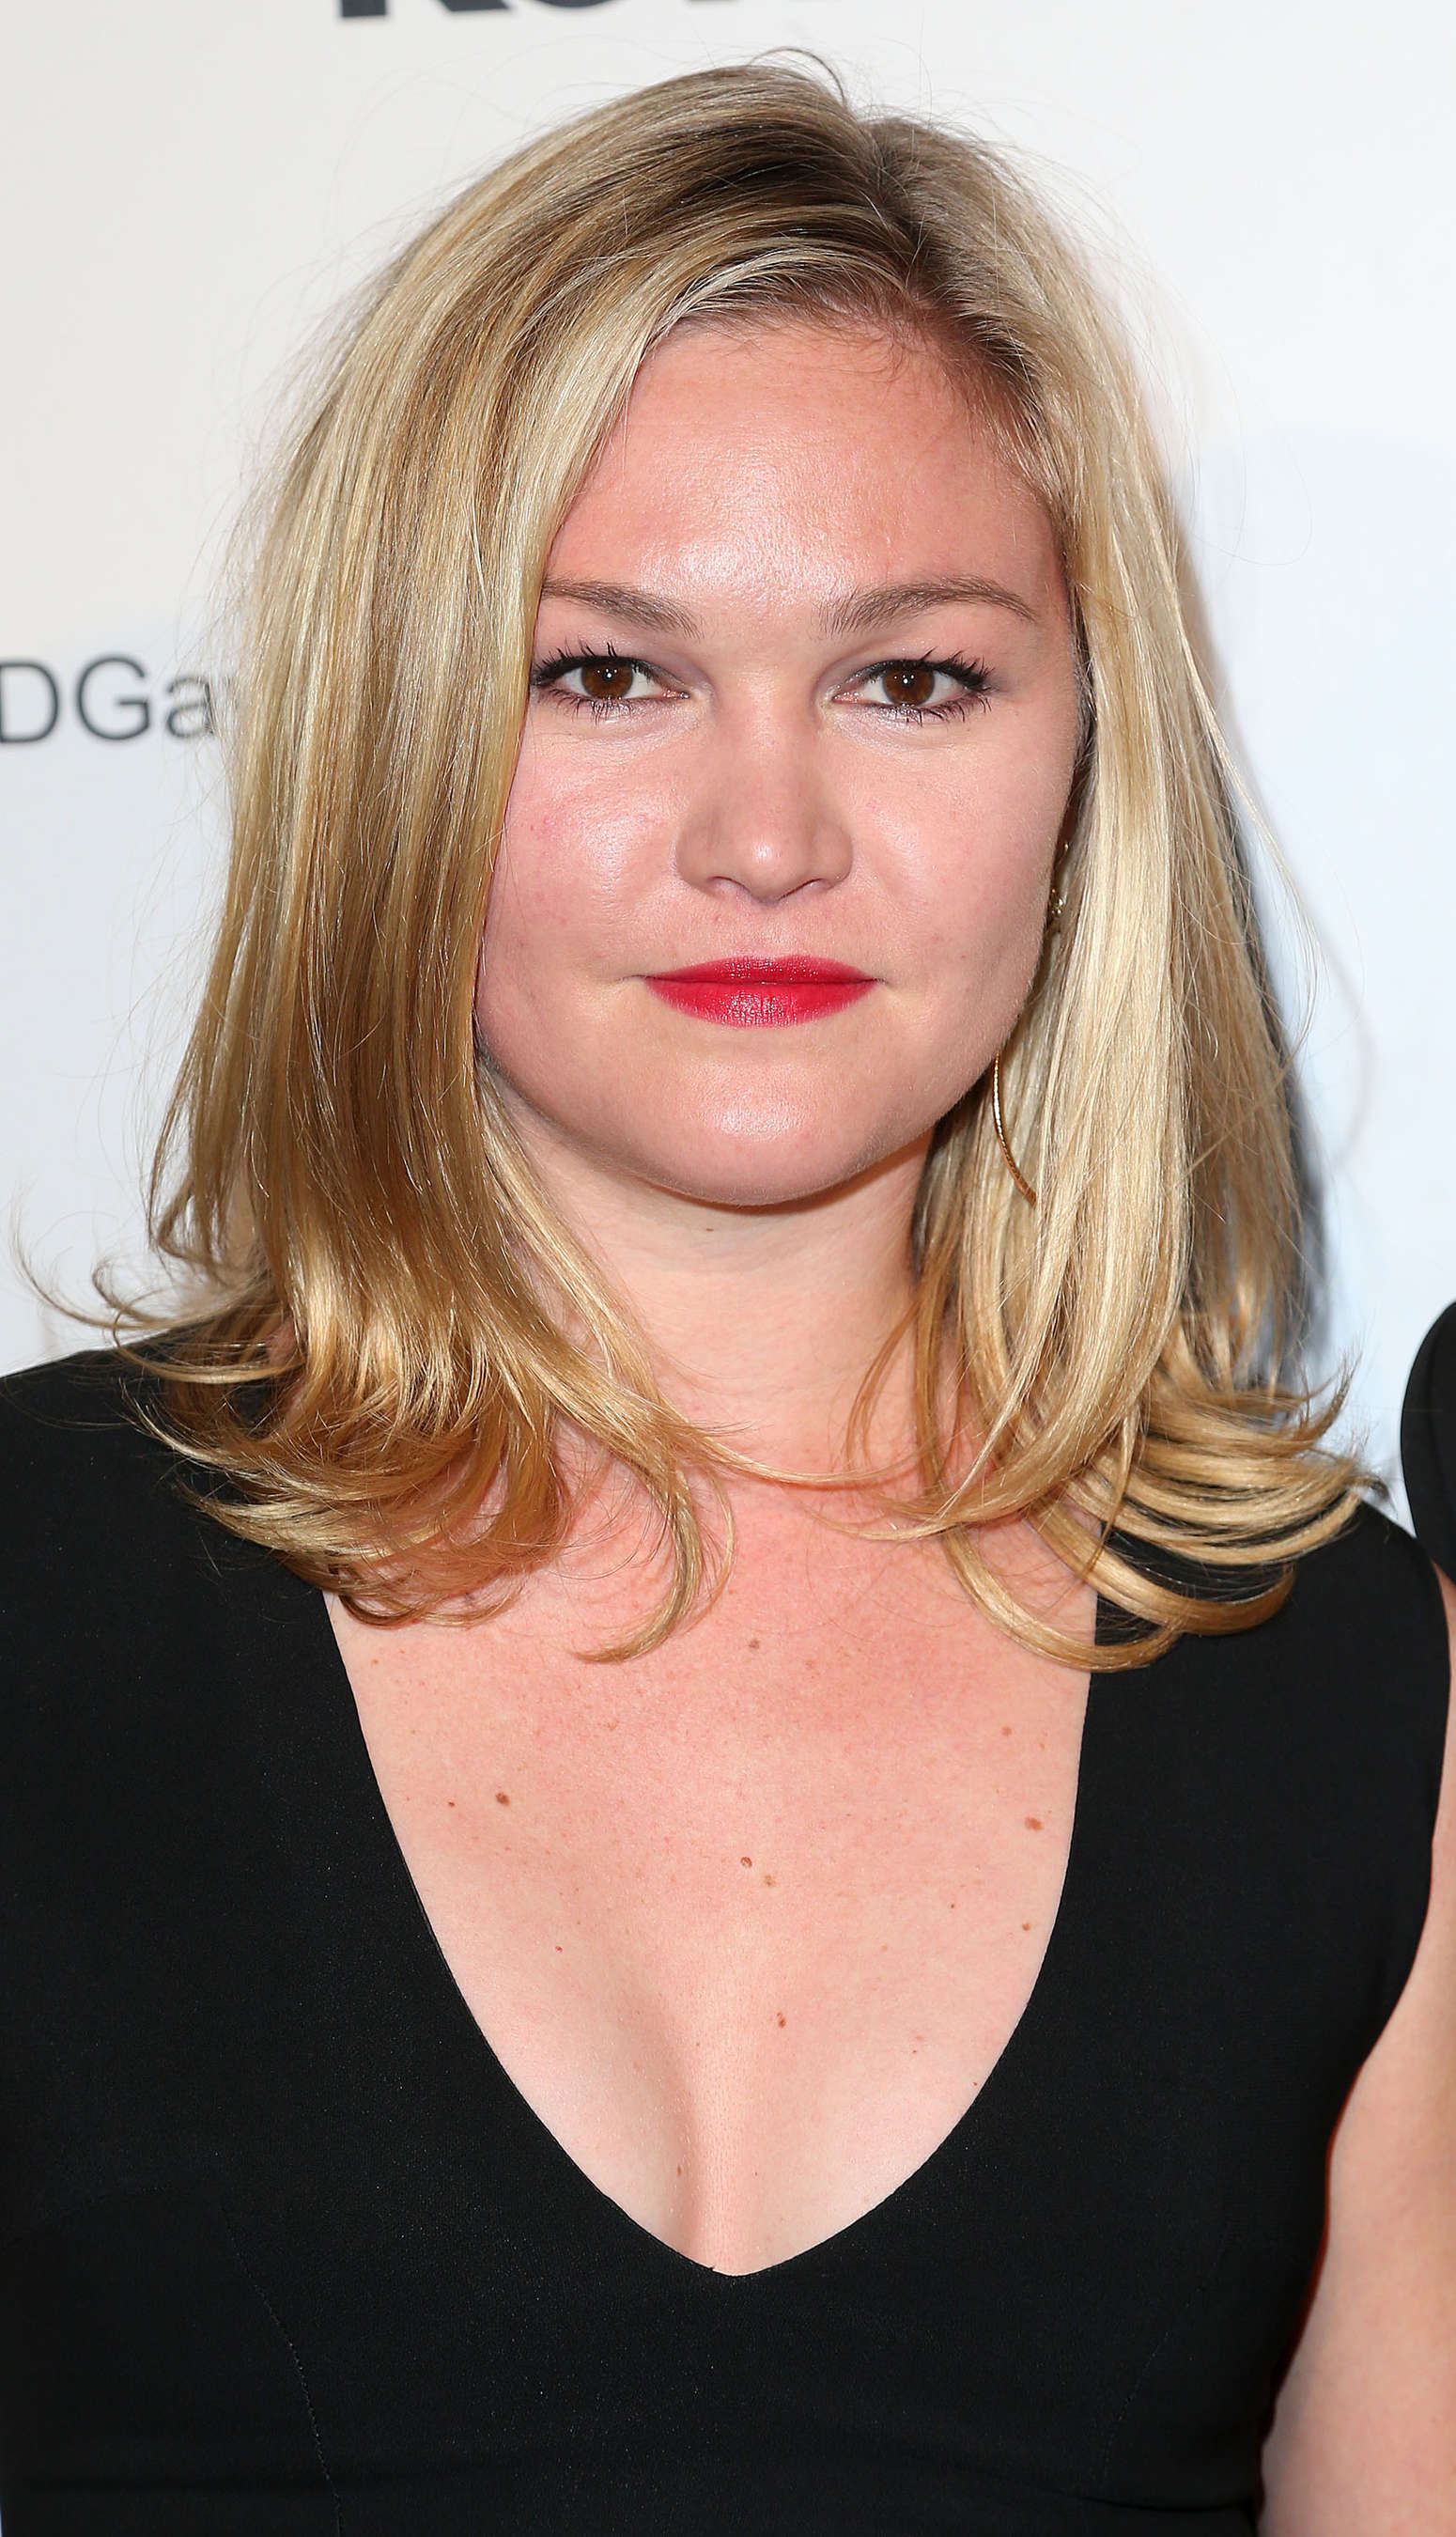 Julia Stiles 2014 : Julia Stiles 2014 ADG Excellence in Production Design Awards -06